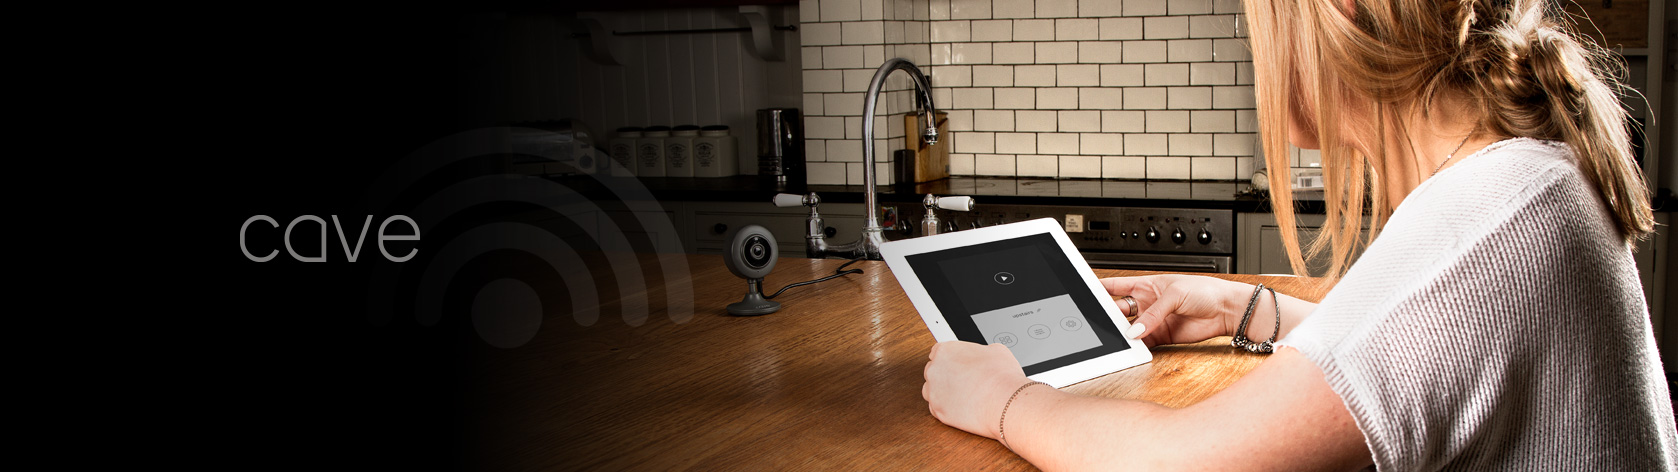 Cave Smart Home